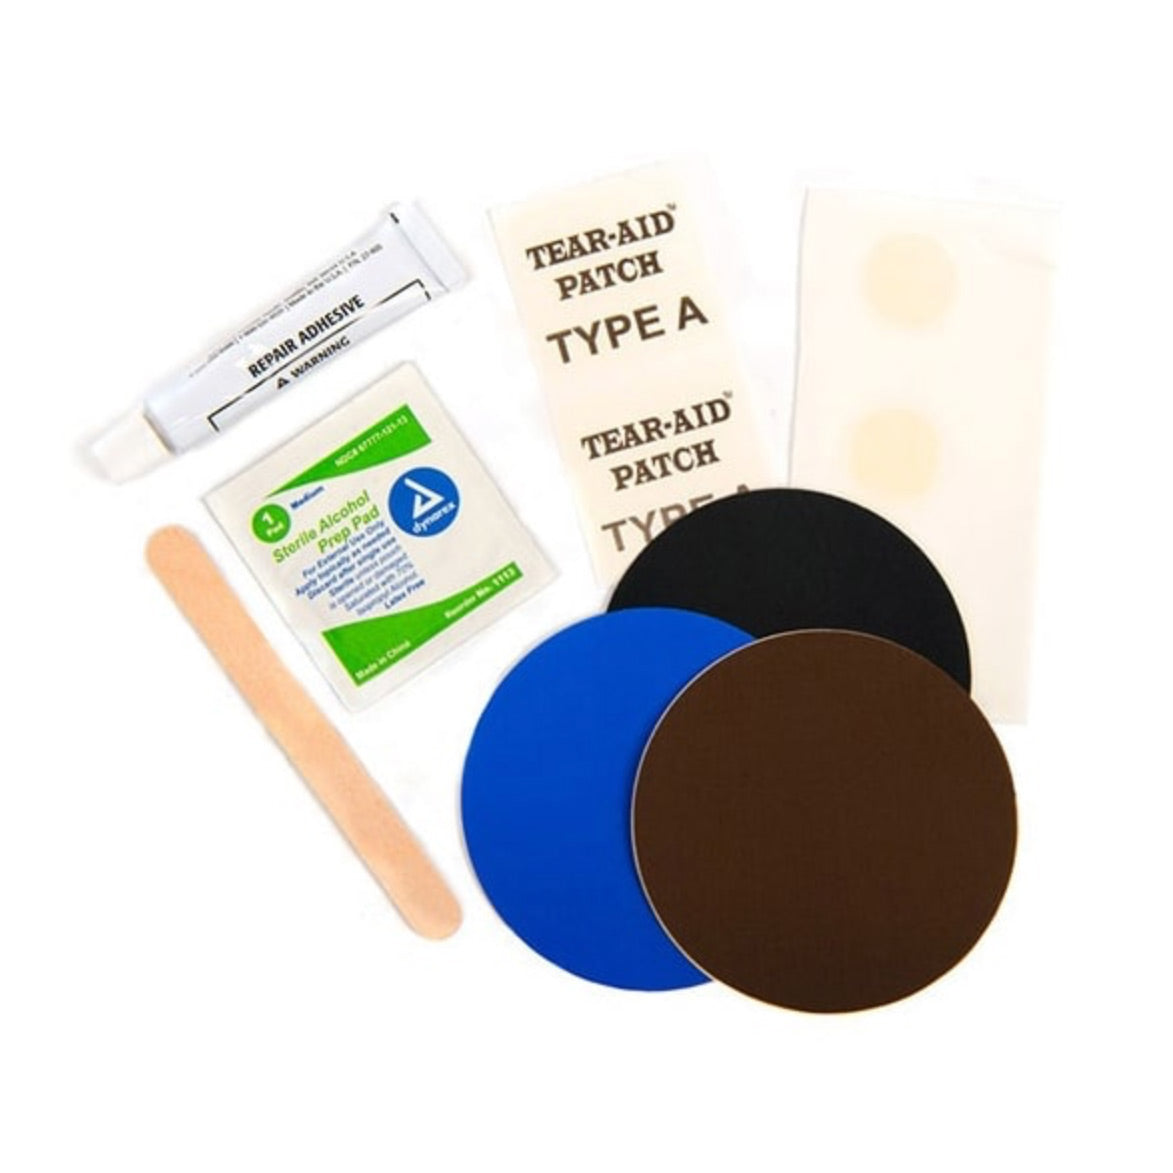 THERM-A-REST PERMANENT HOME REPEAR KIT